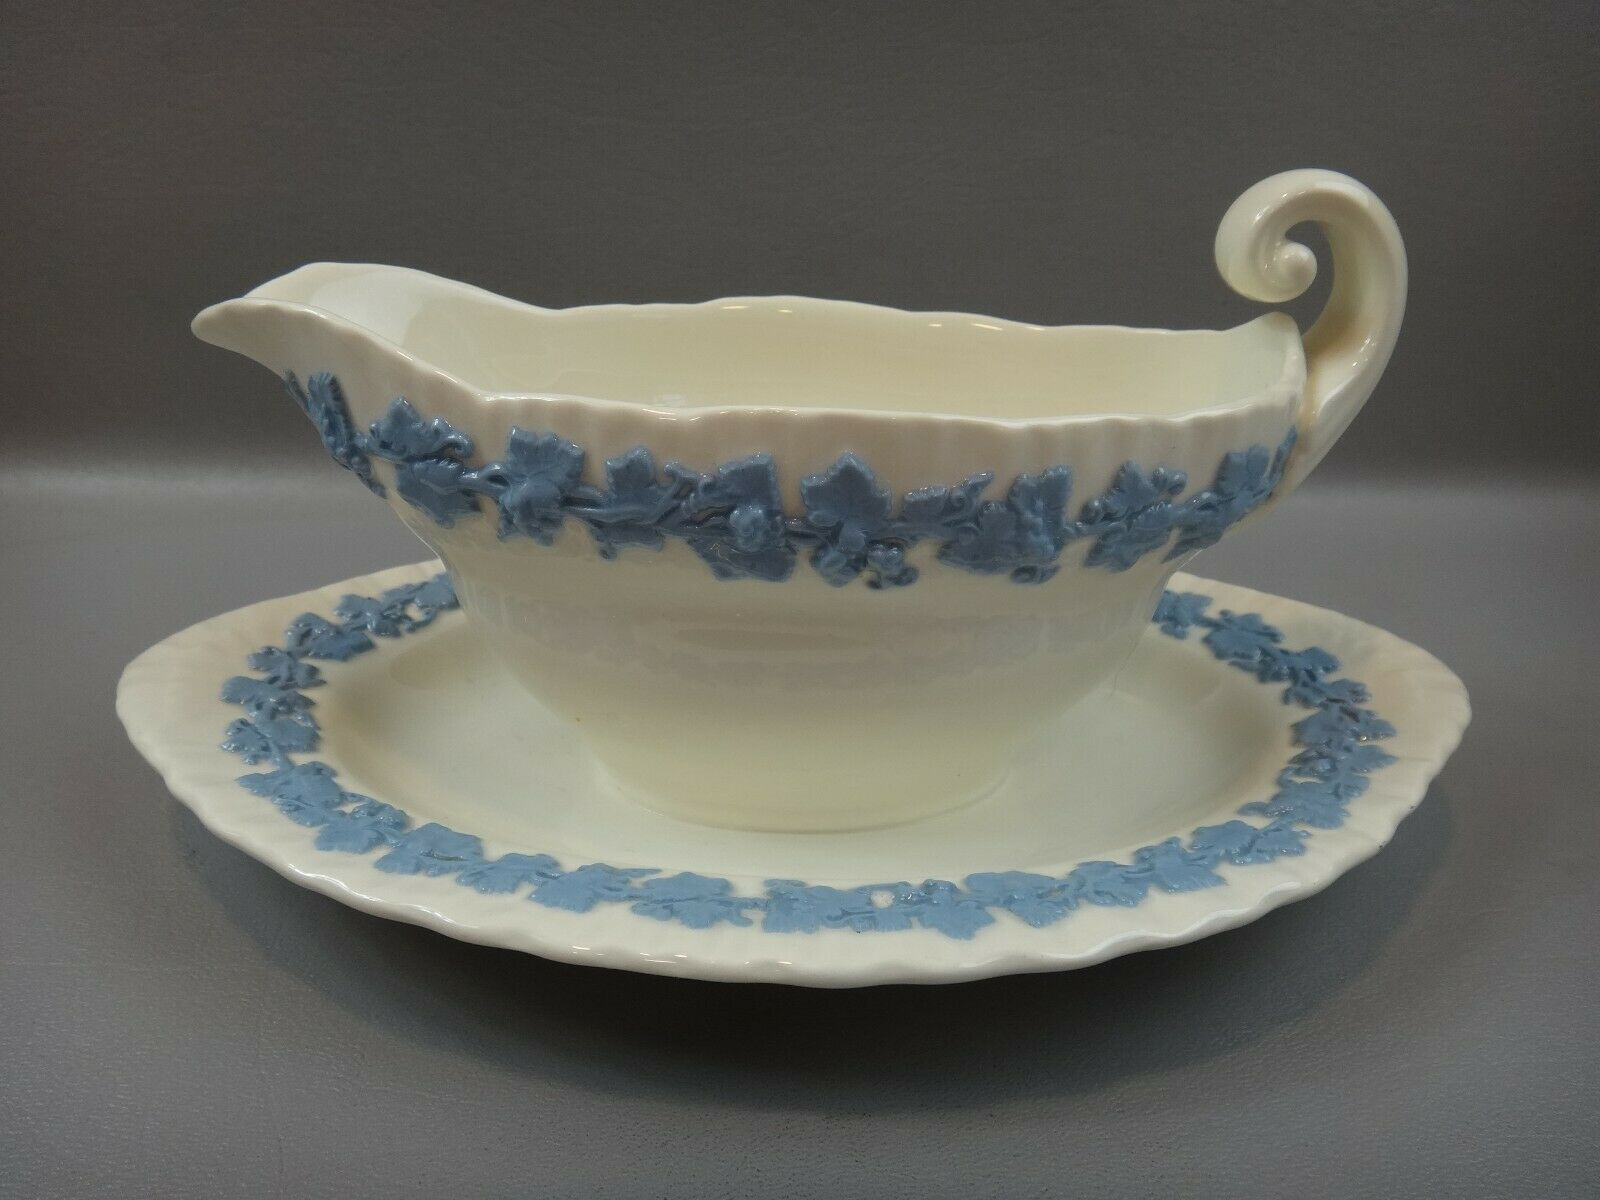 Image 1 - WEDGWOOD QUEENSWARE Shell Edge Lavender on Cream Gravy Boat Attached Under Plate